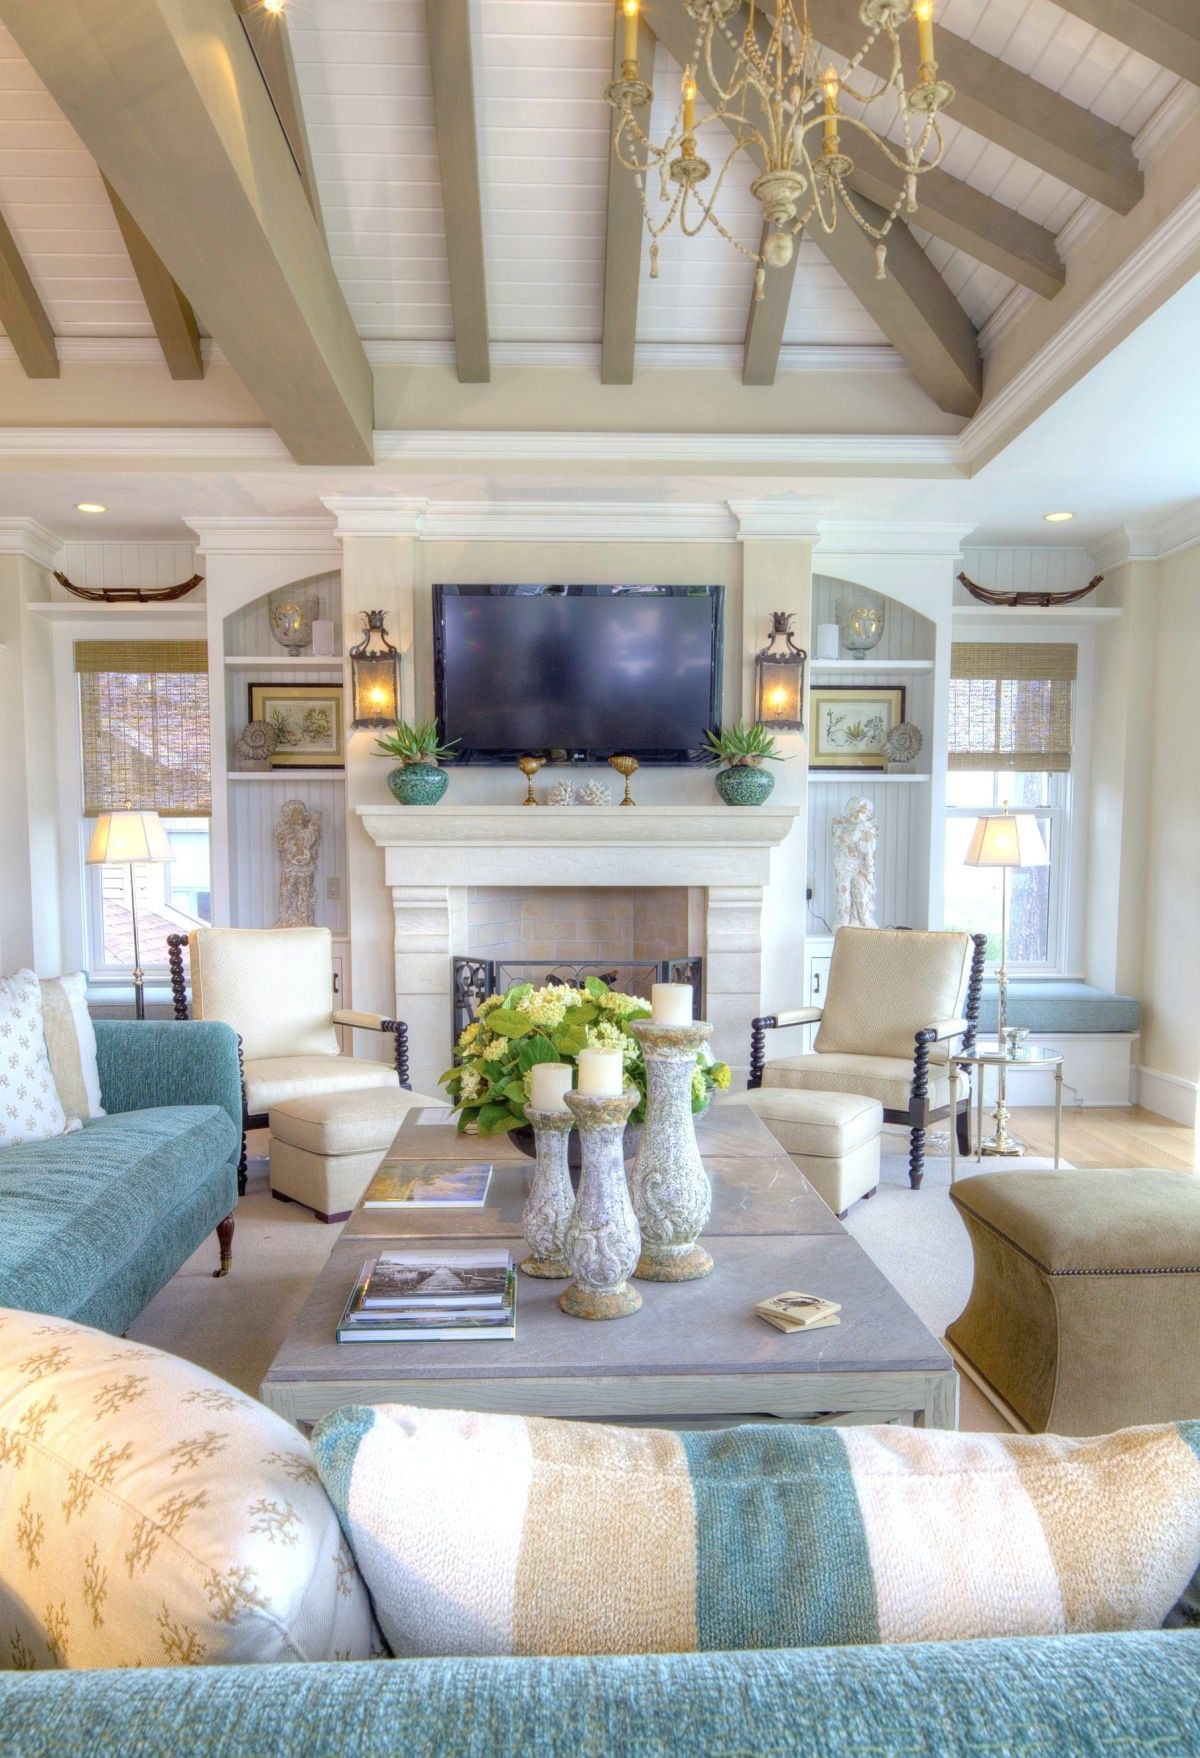 Home Interiors Decorating Ideas How To Install Faux Wood Beams Beam Me Up Scottie Lake House